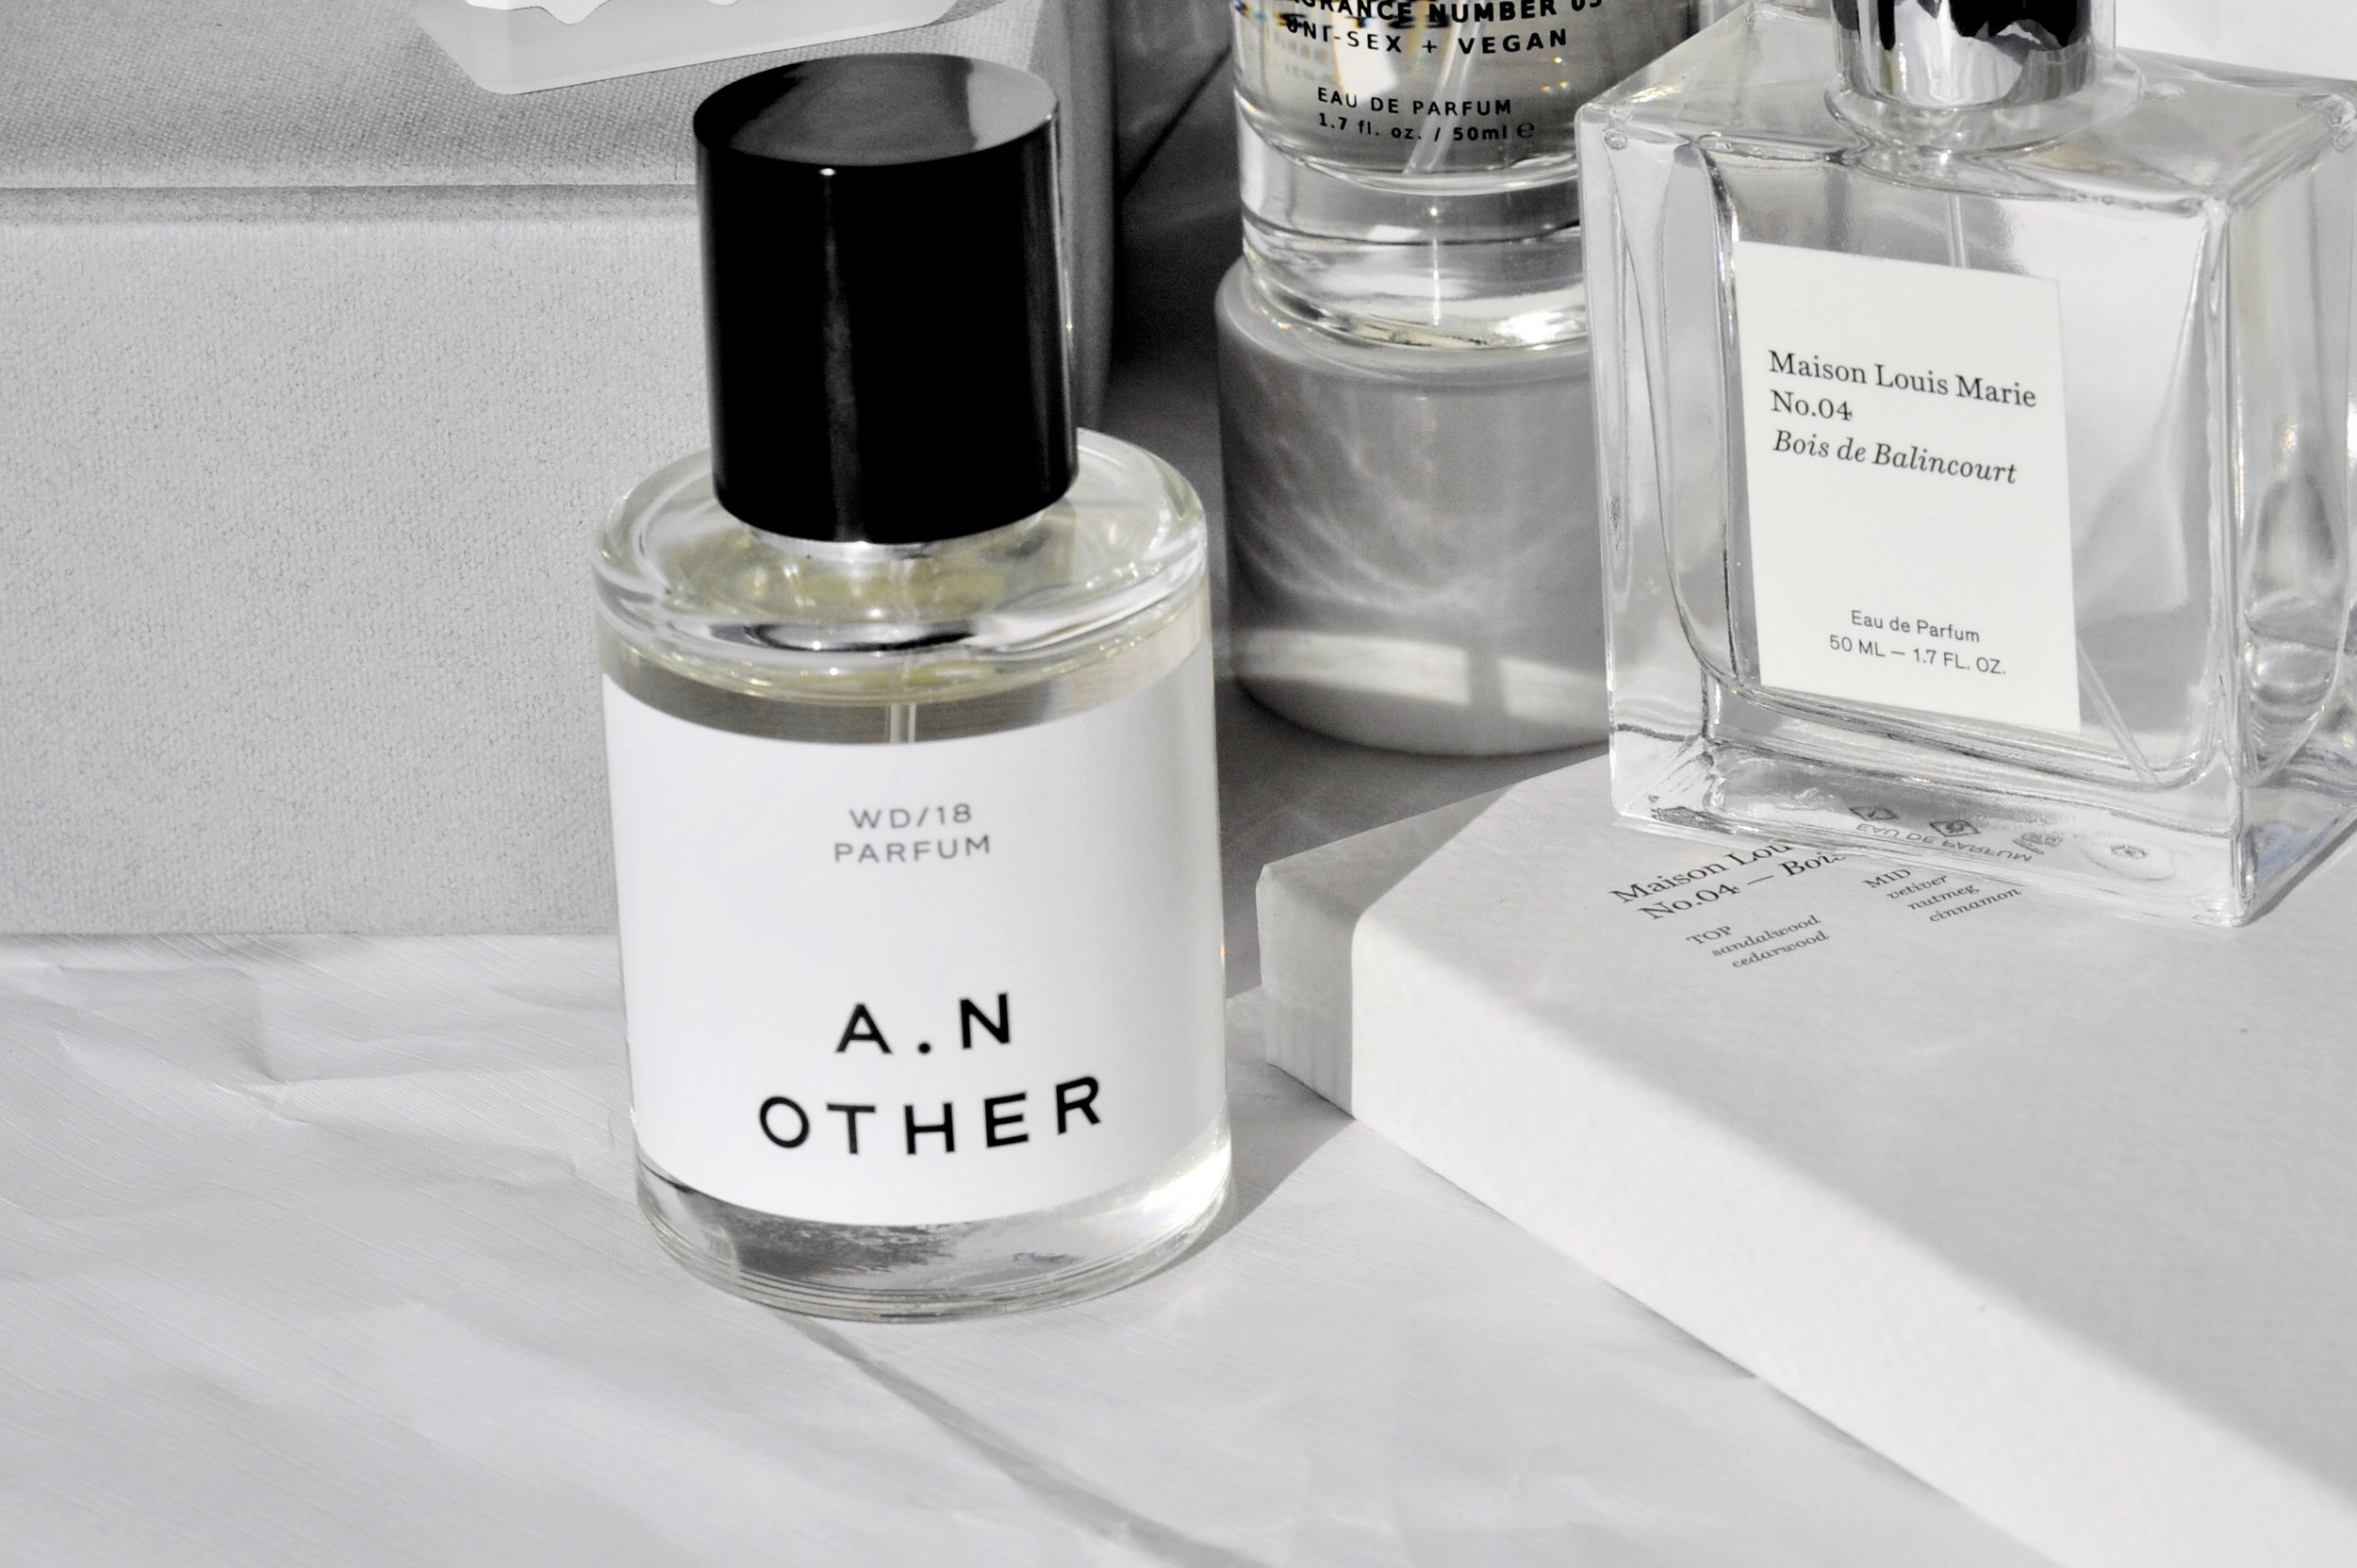 A.N Other-perfume-review